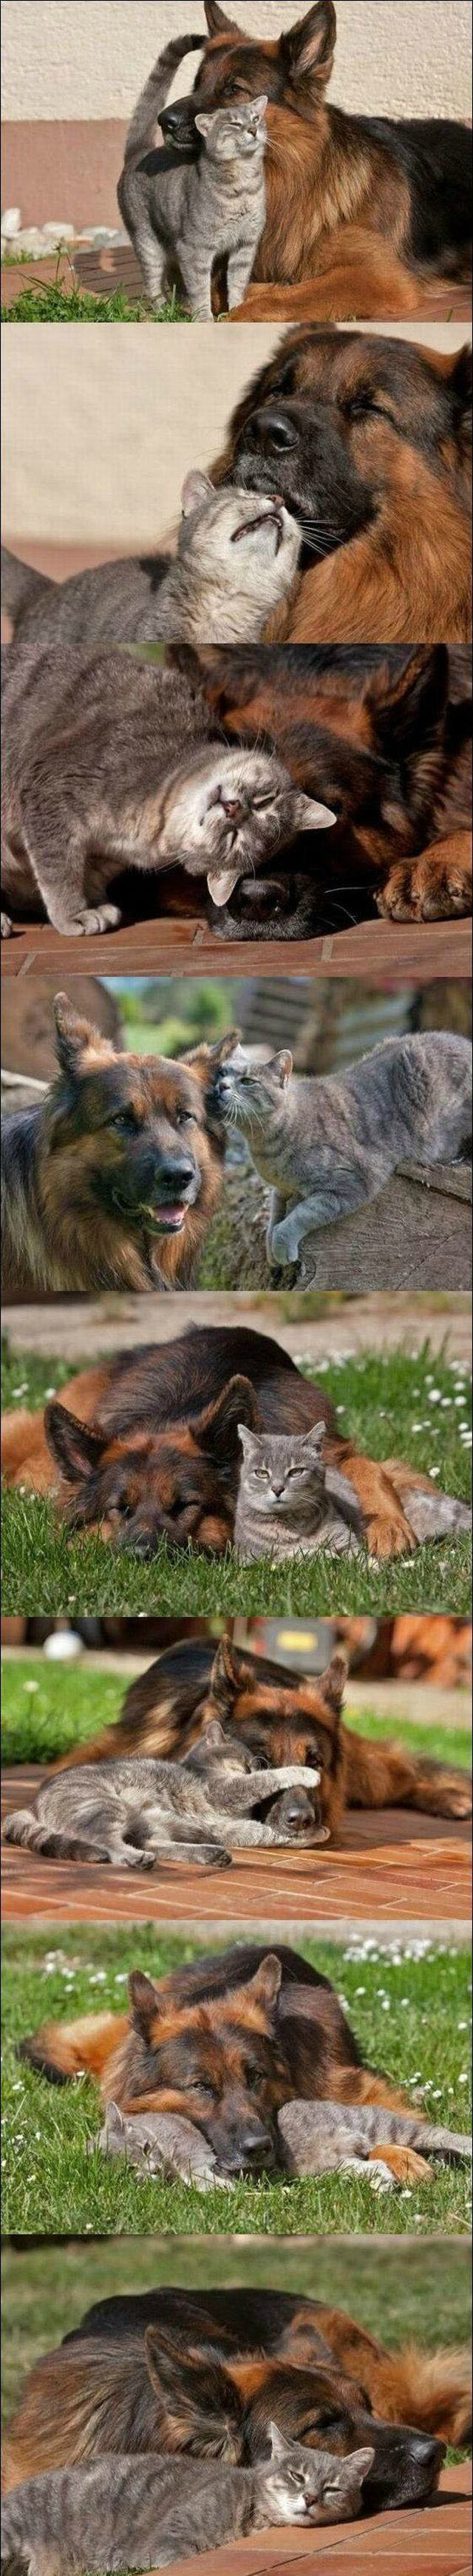 friends - awesome animals